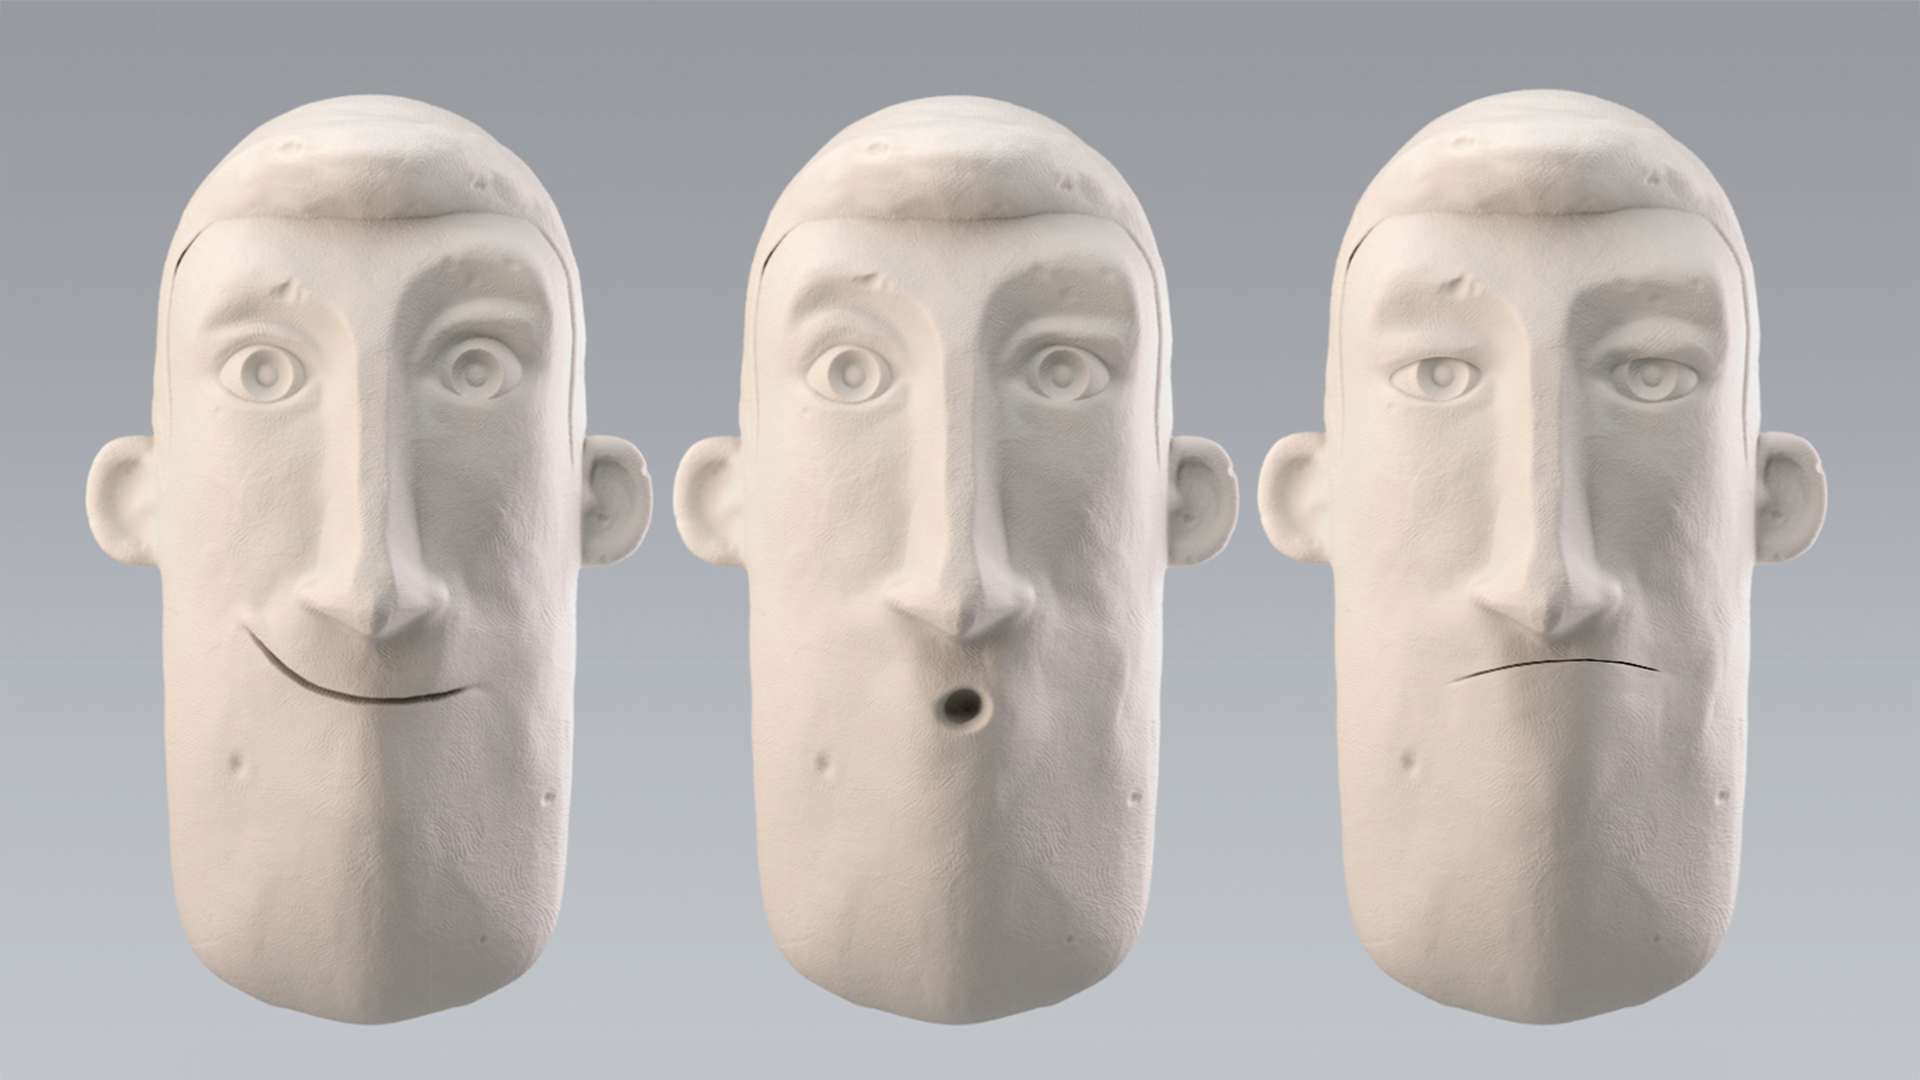 04_HEADS_v01.png